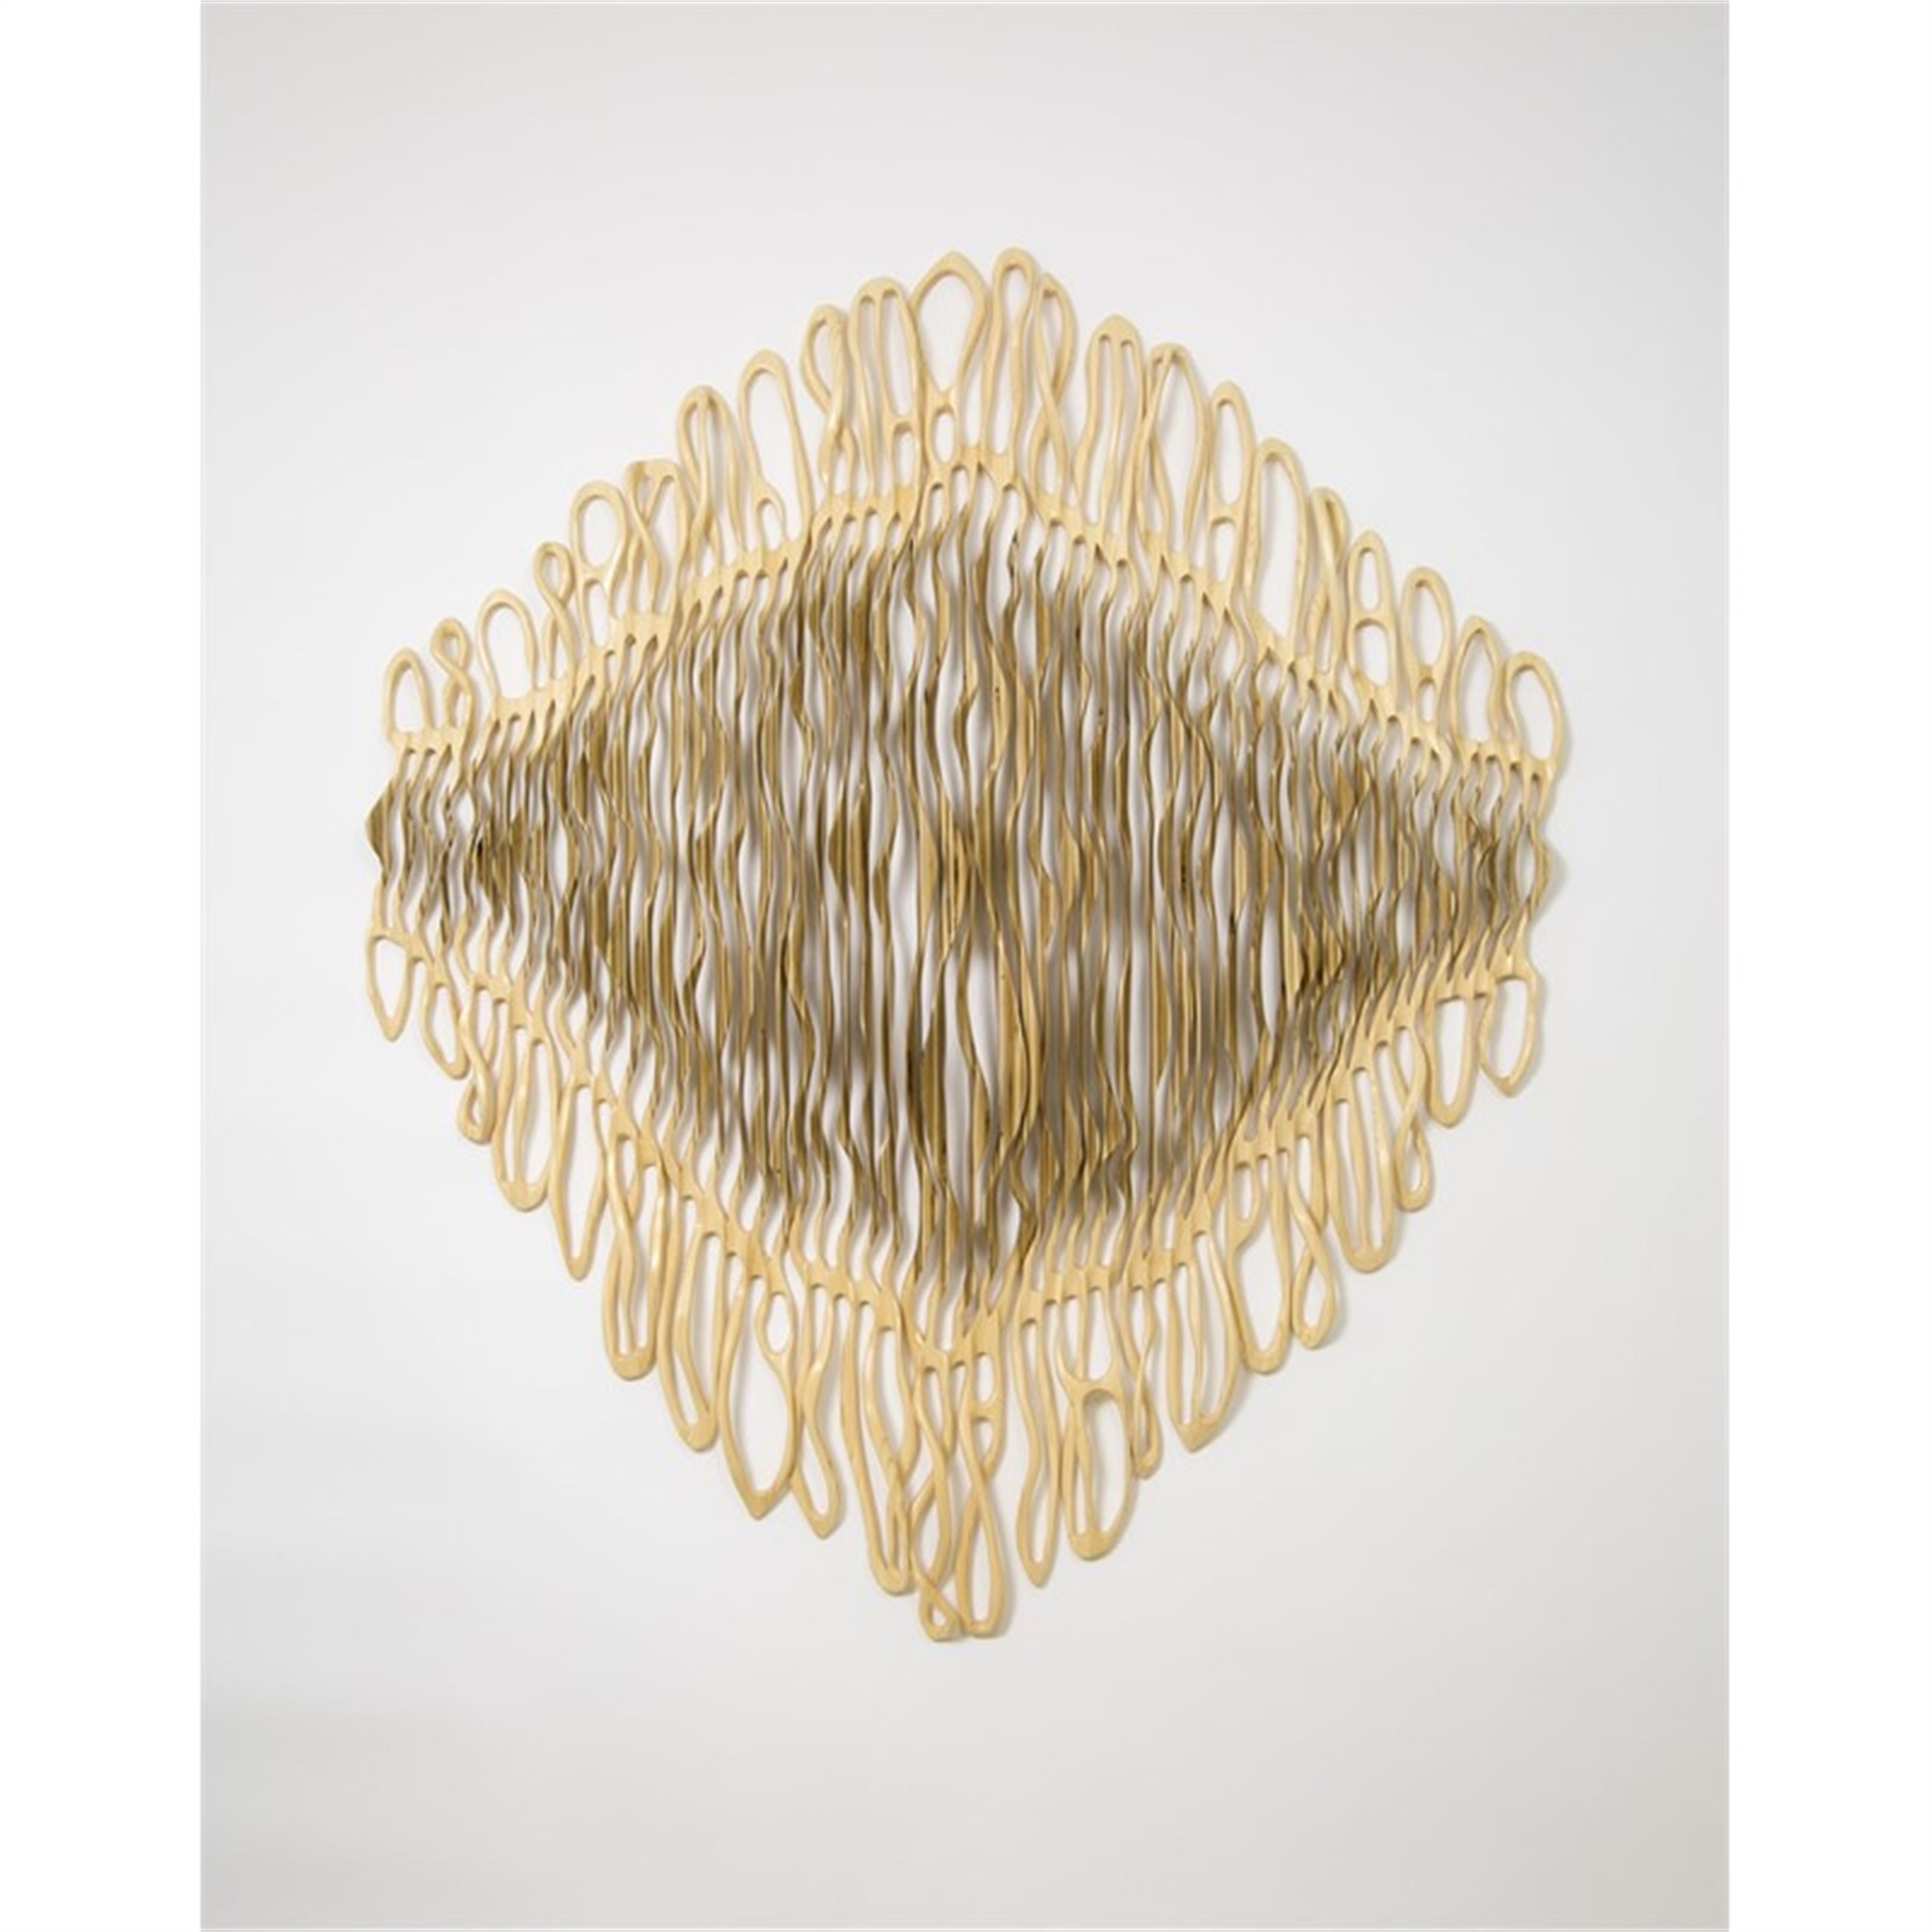 Birch Plywood Cascade X by Caprice Pierucci